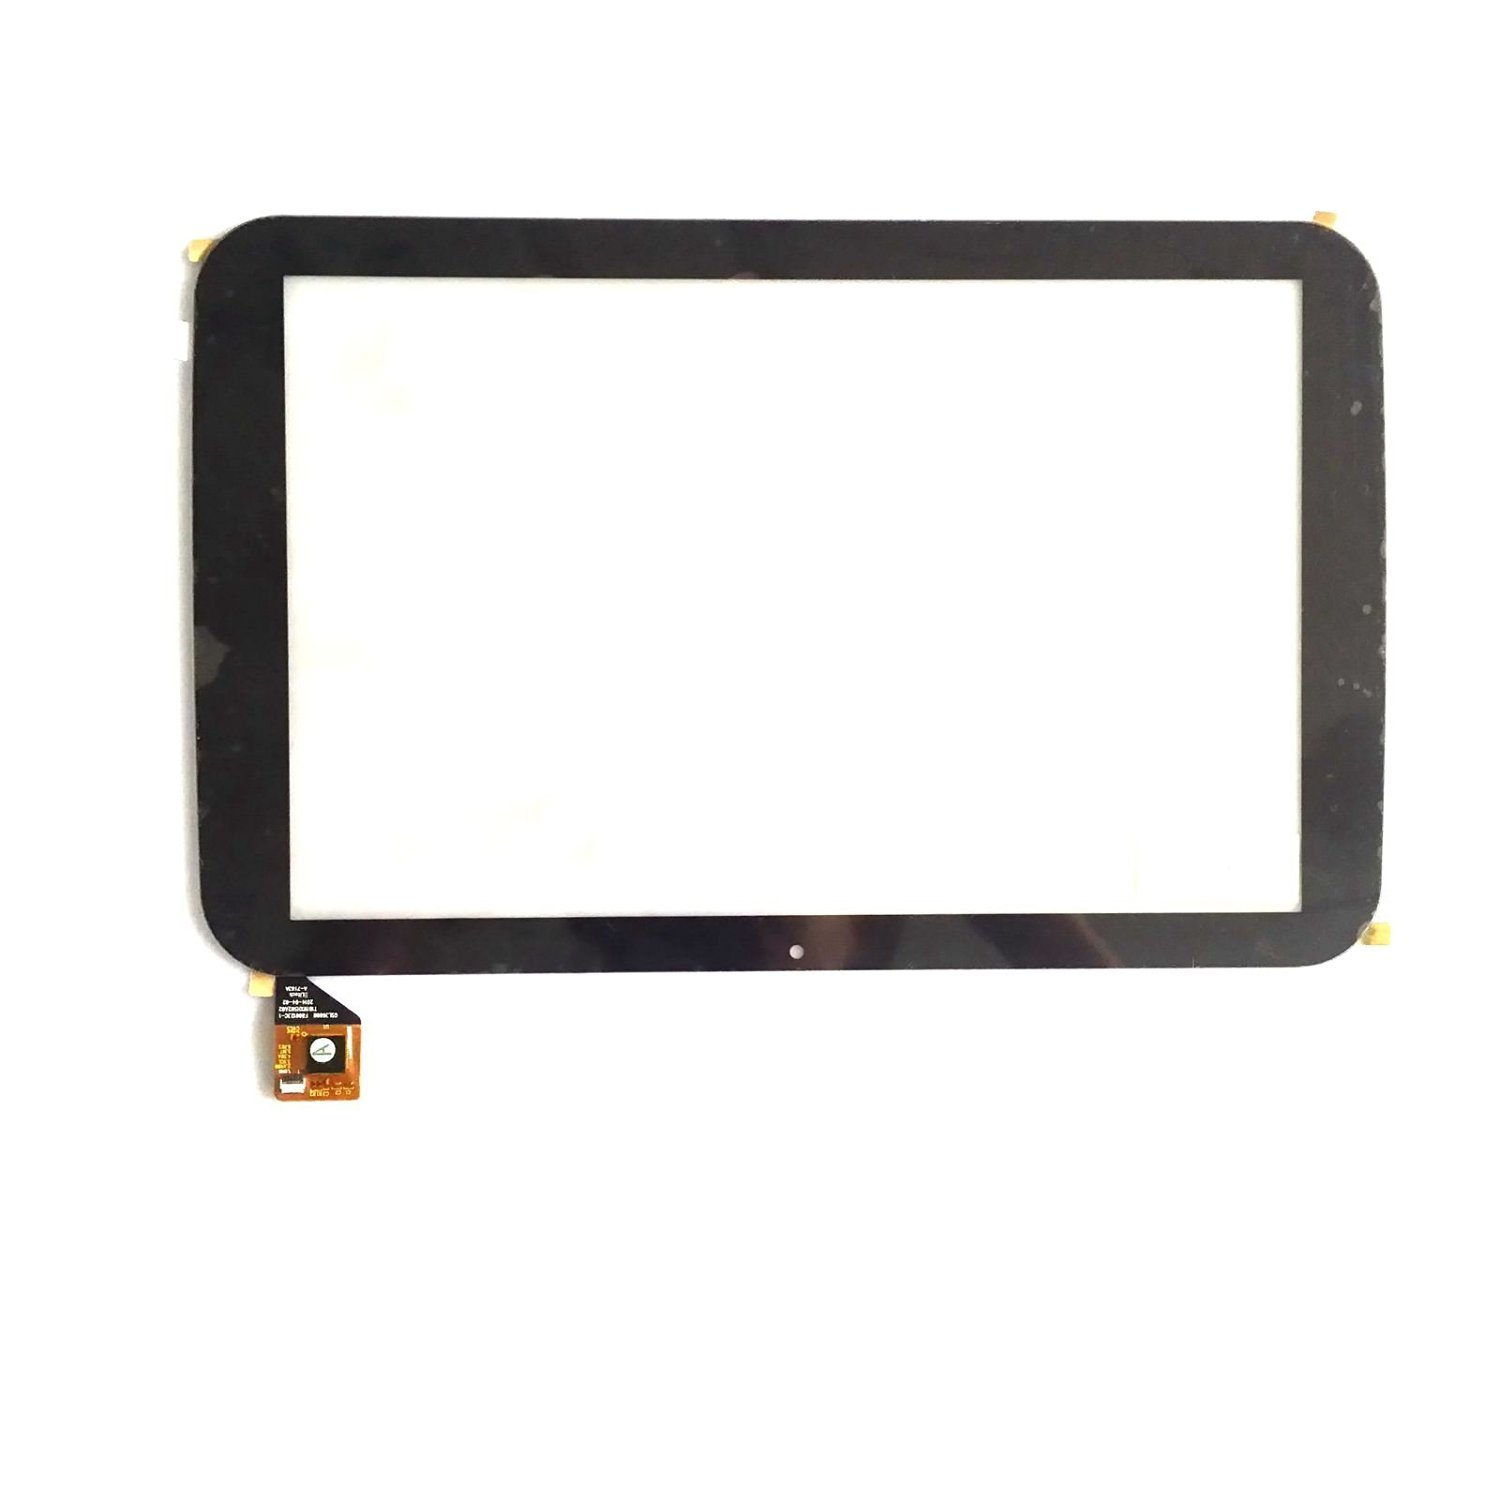 EUTOPING New 10.1 inch GSL3680B F800123C-1 T101WXHS02A02 A-7183A OGS touch screen SG1001 touch screen panel Digitizer for tablet